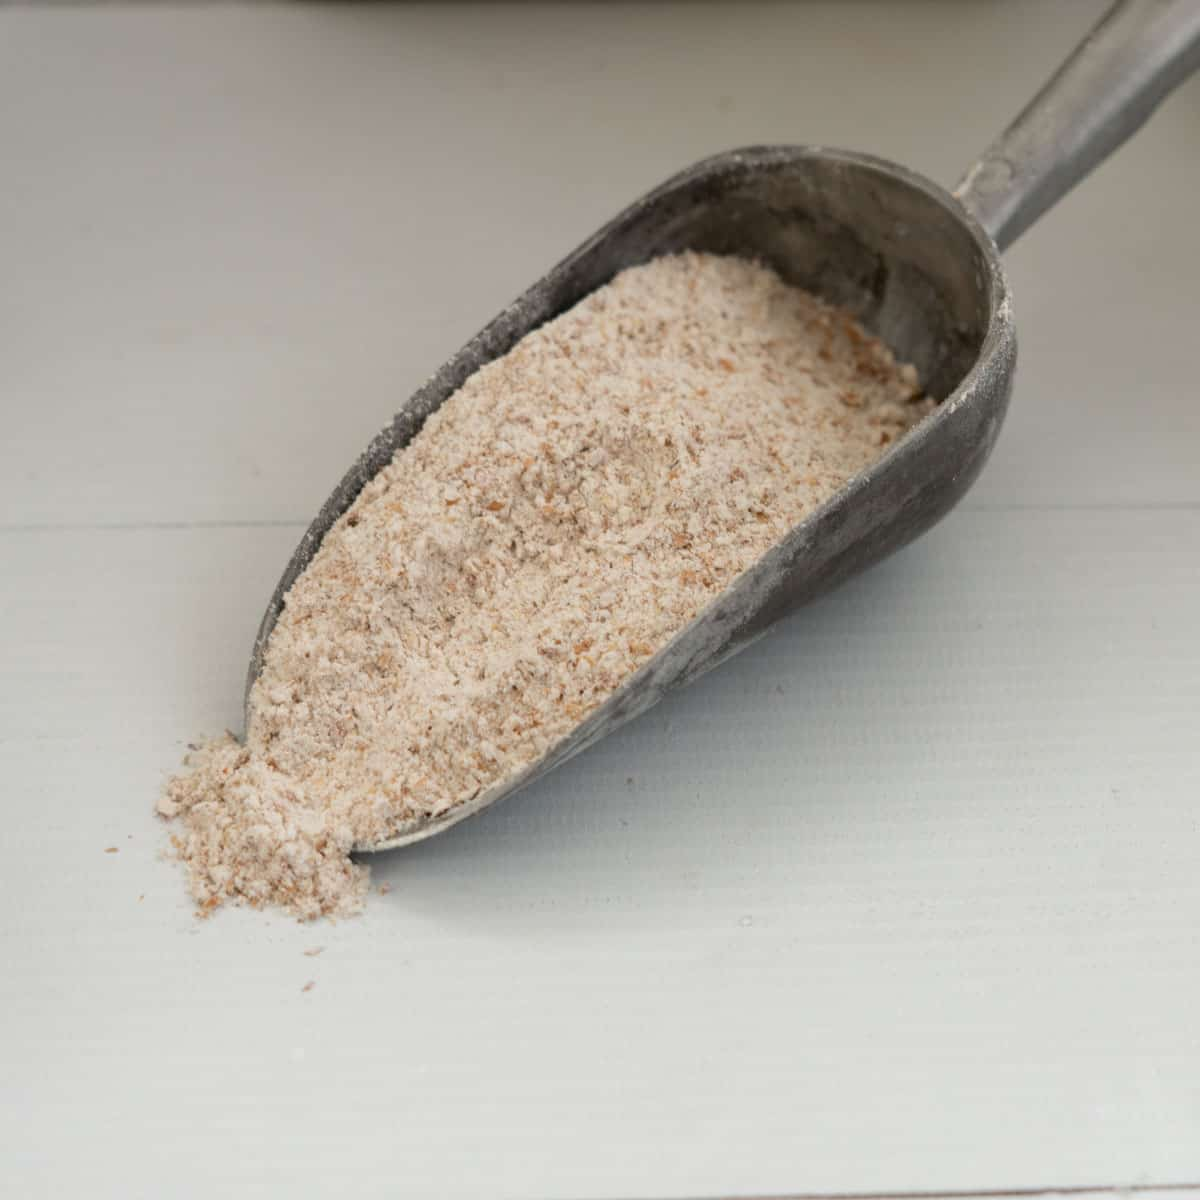 scoop of wholemeal flour, showing the coarse texture